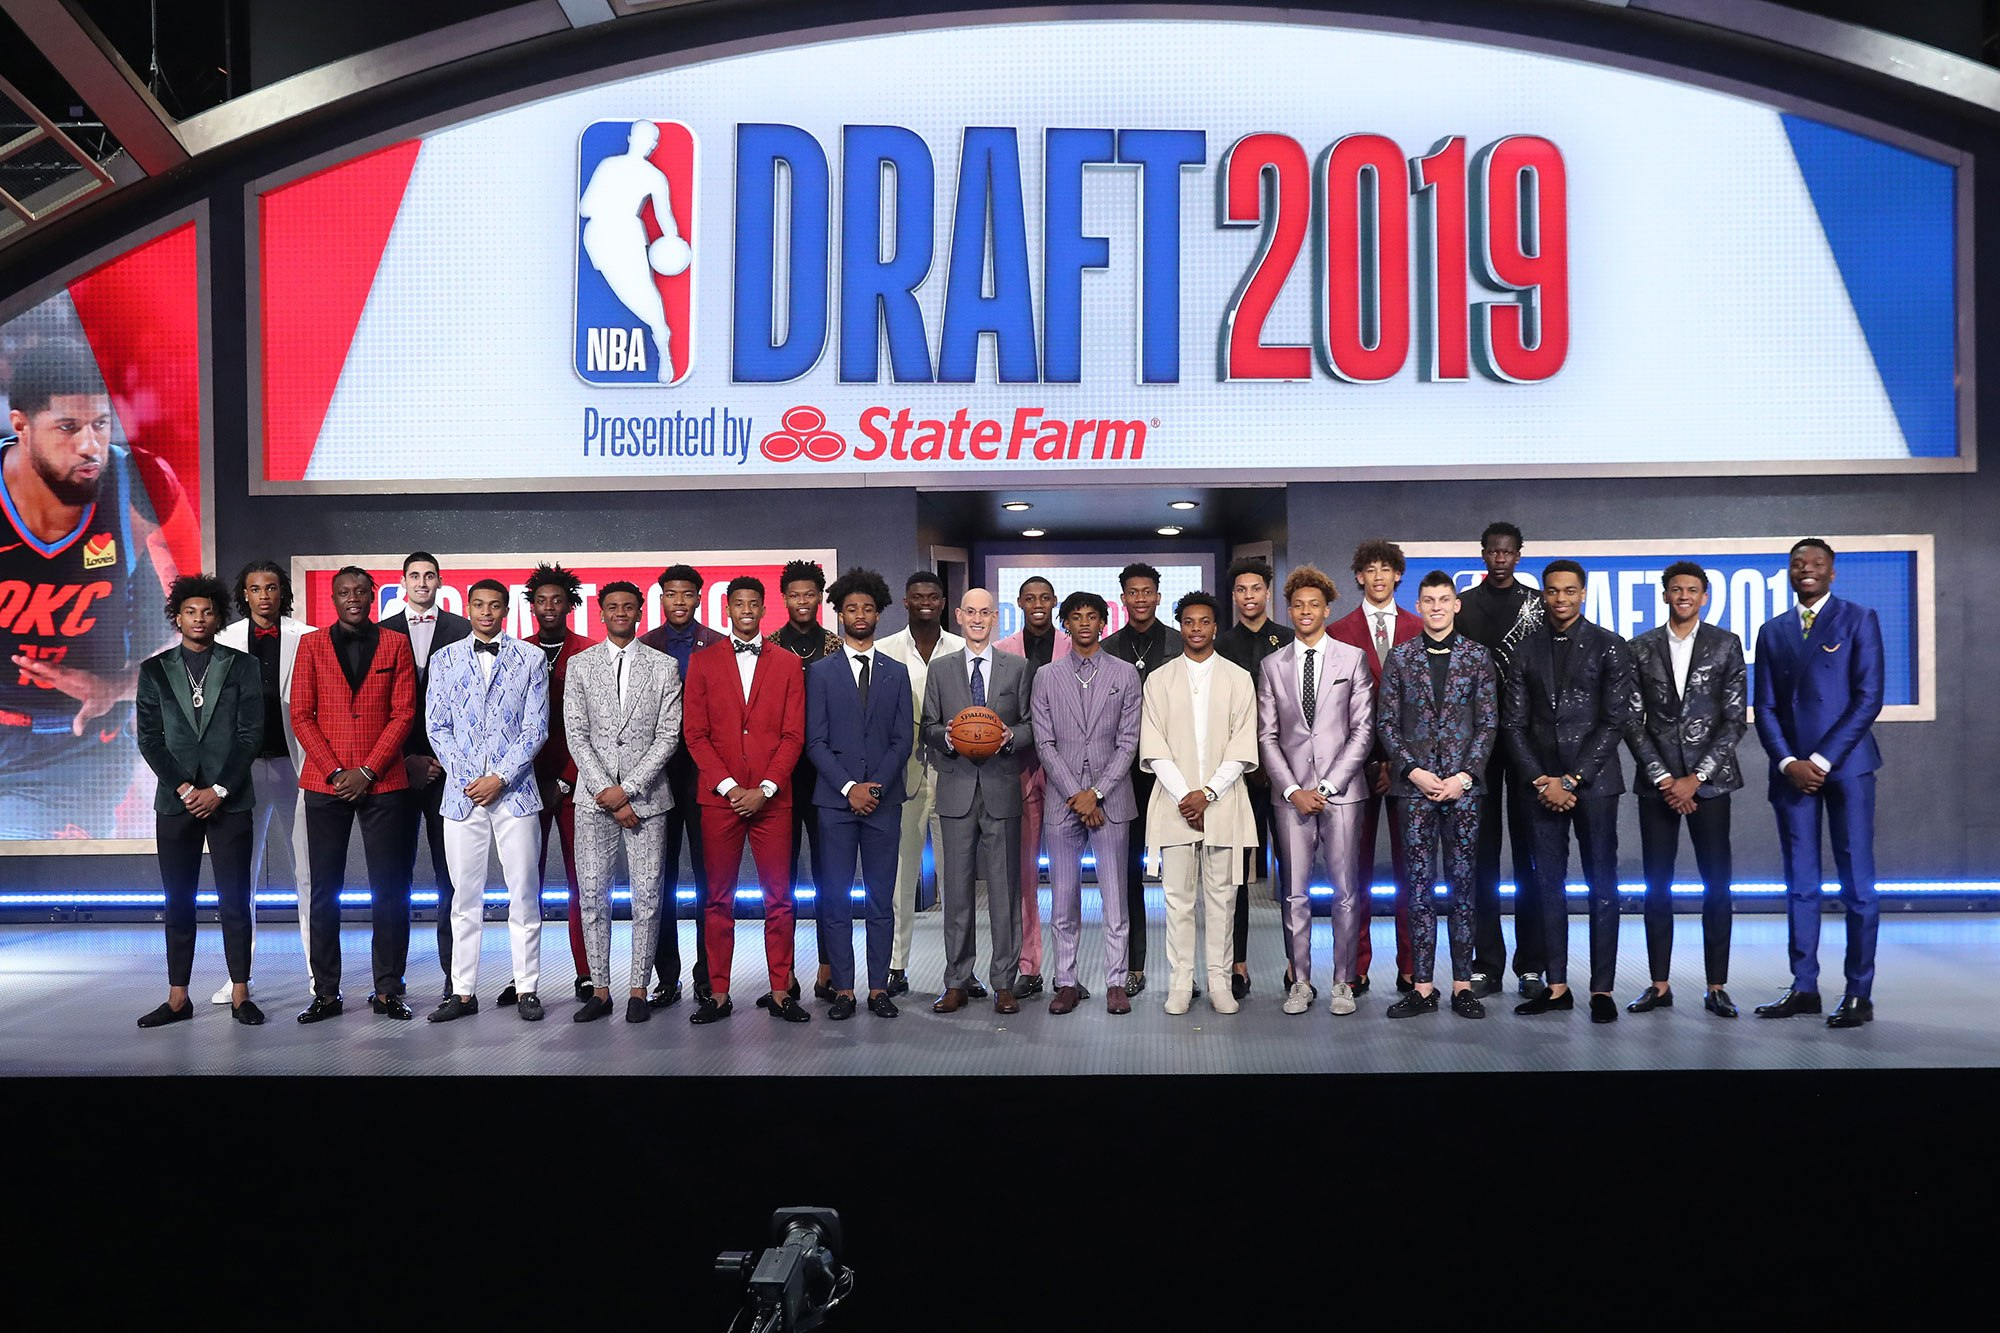 Sexism Much? NBA Goes 60 Consecutive Draft Picks Without Selecting A Girl